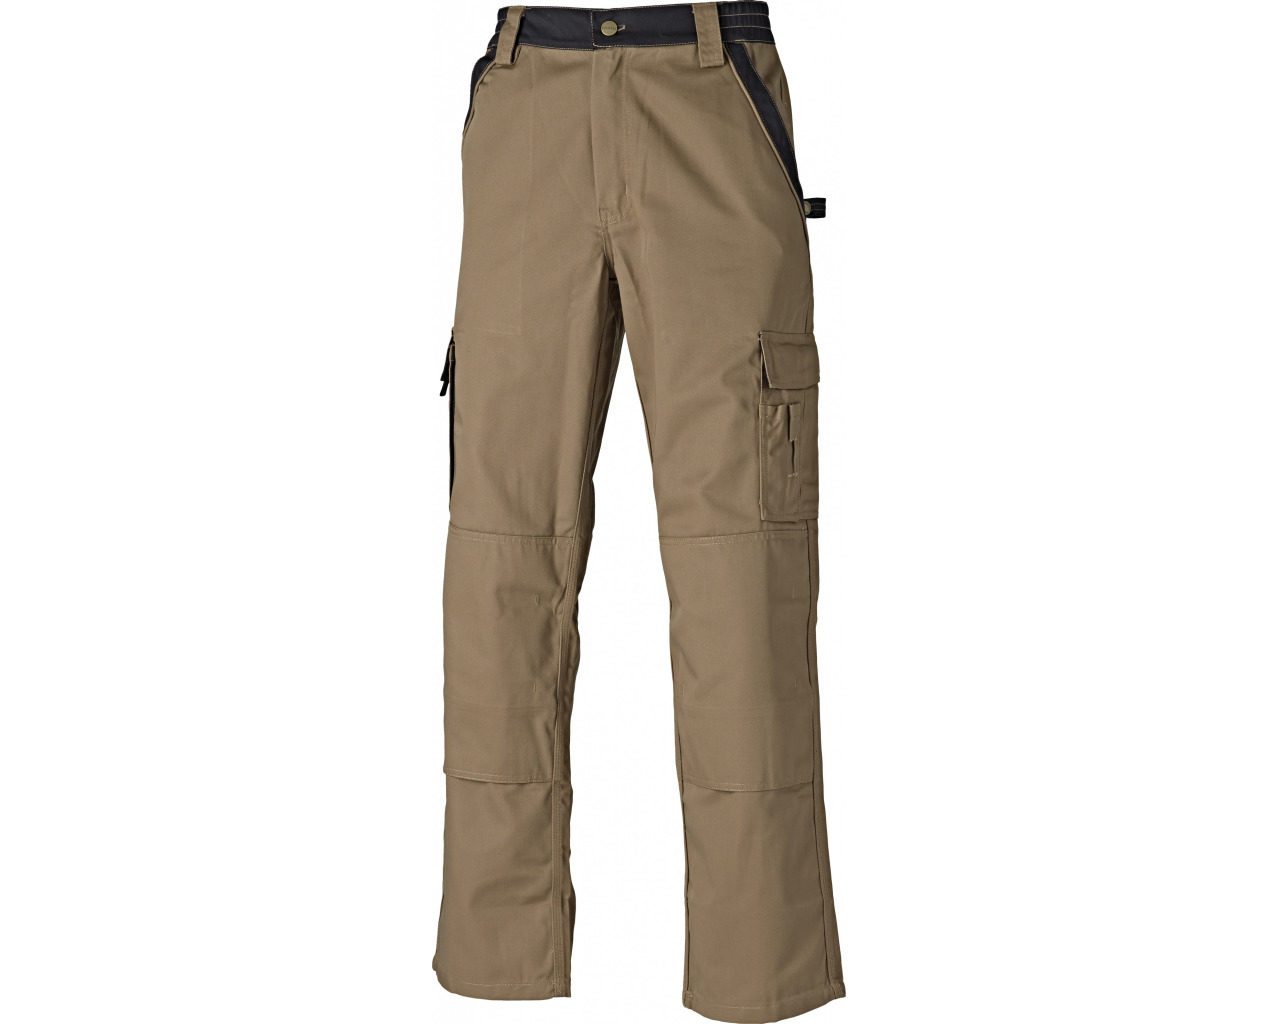 industry300 two tone work trousers ohbysrf